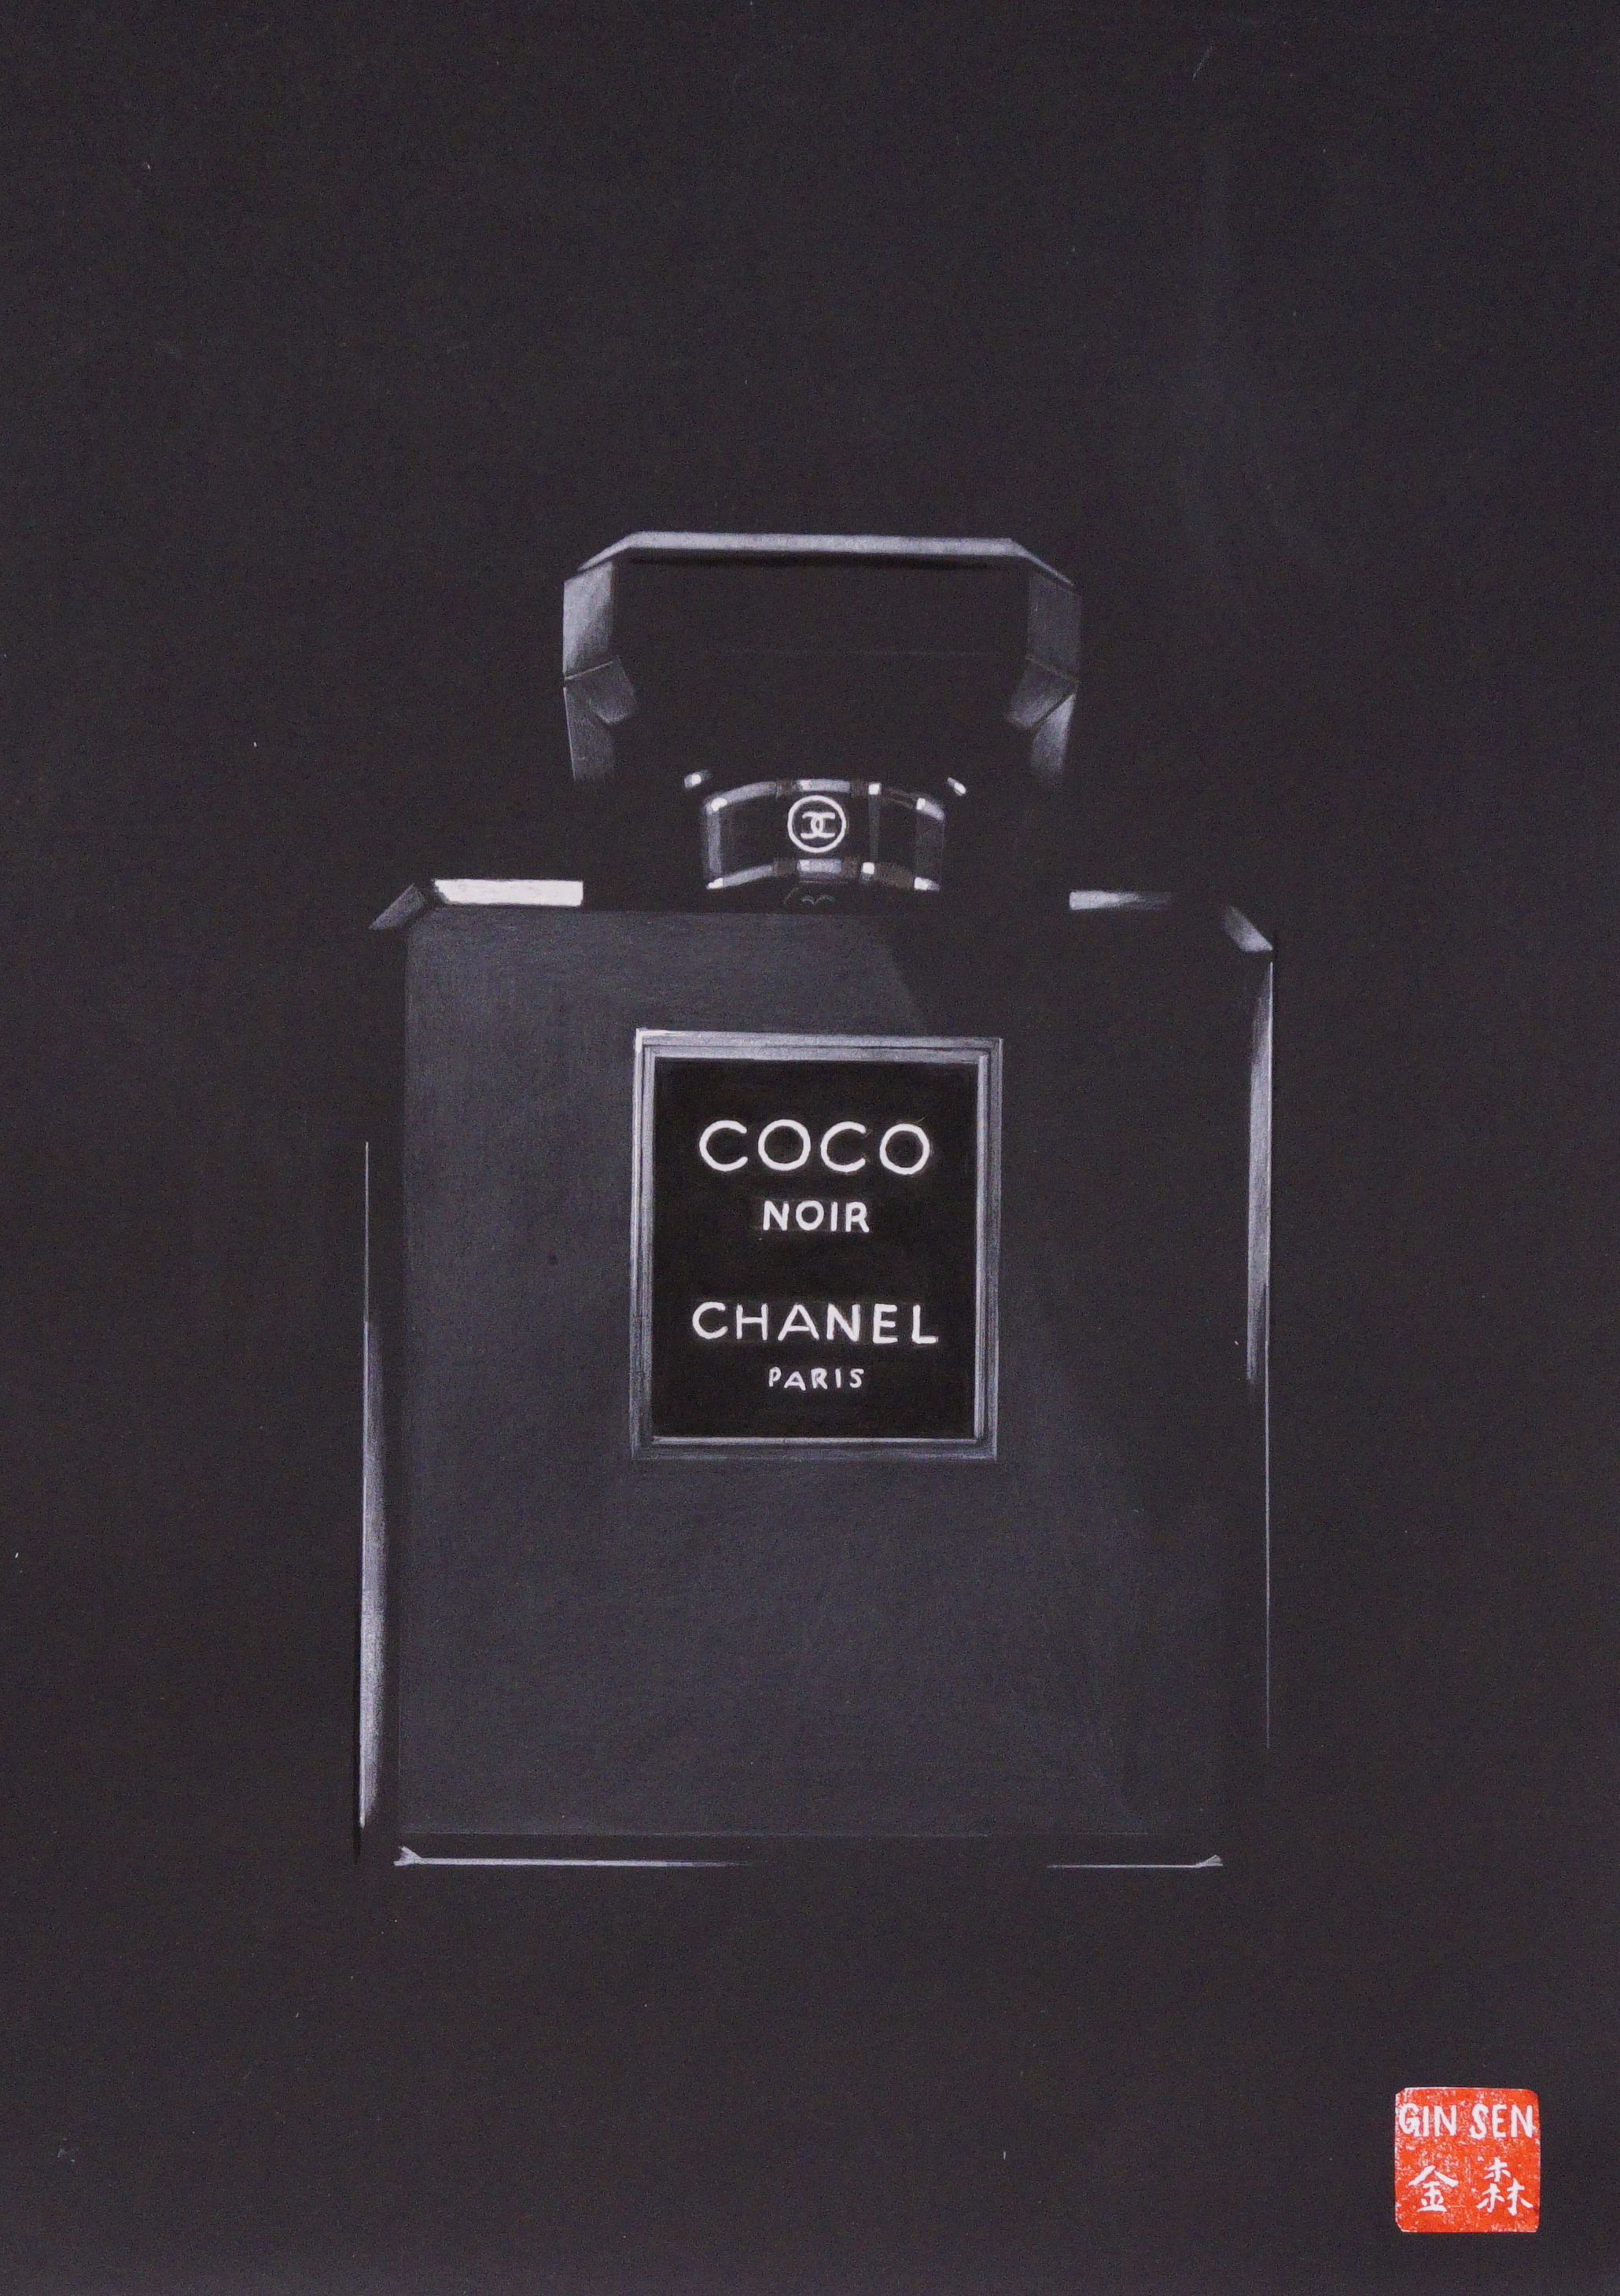 Coco Noir by Chanel, 2017